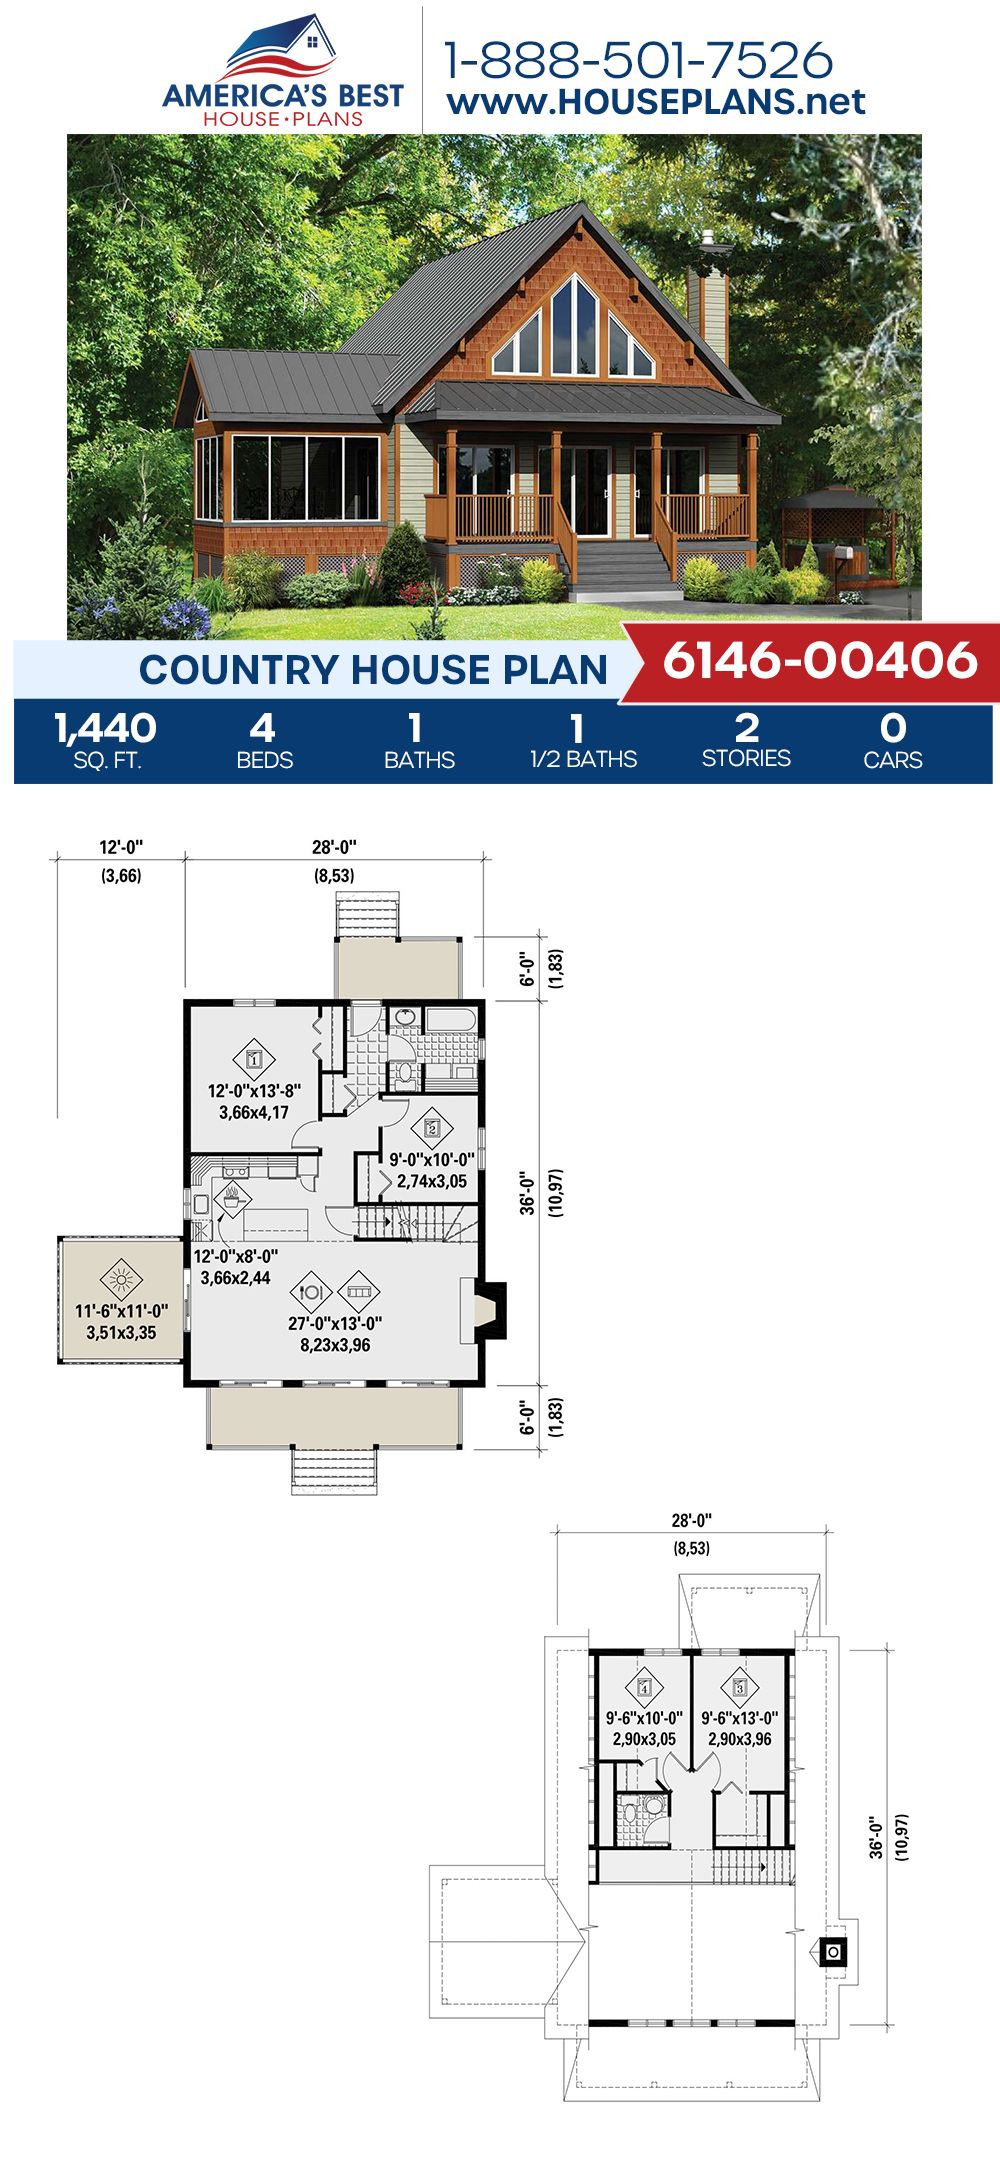 House Plan 6146 00406 Country Plan 1 440 Square Feet 4 Bedrooms 1 5 Bathrooms Country House Plans House Plans Country House Design